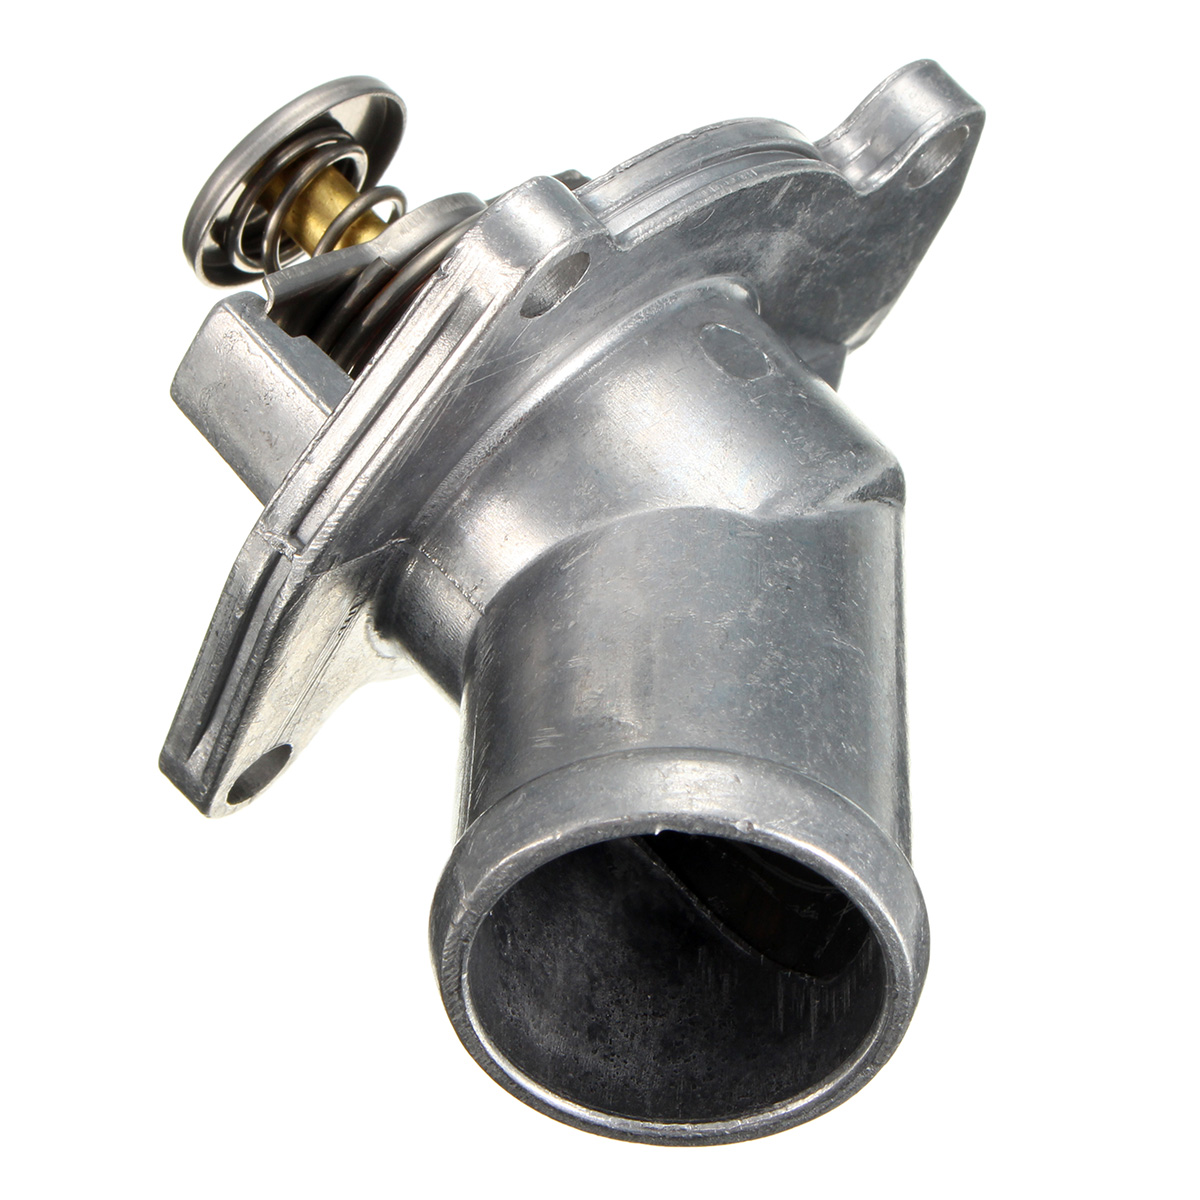 New Engine Coolant Thermostat Kit For Opel Vauxhall Corsa Sale Shipping Methods